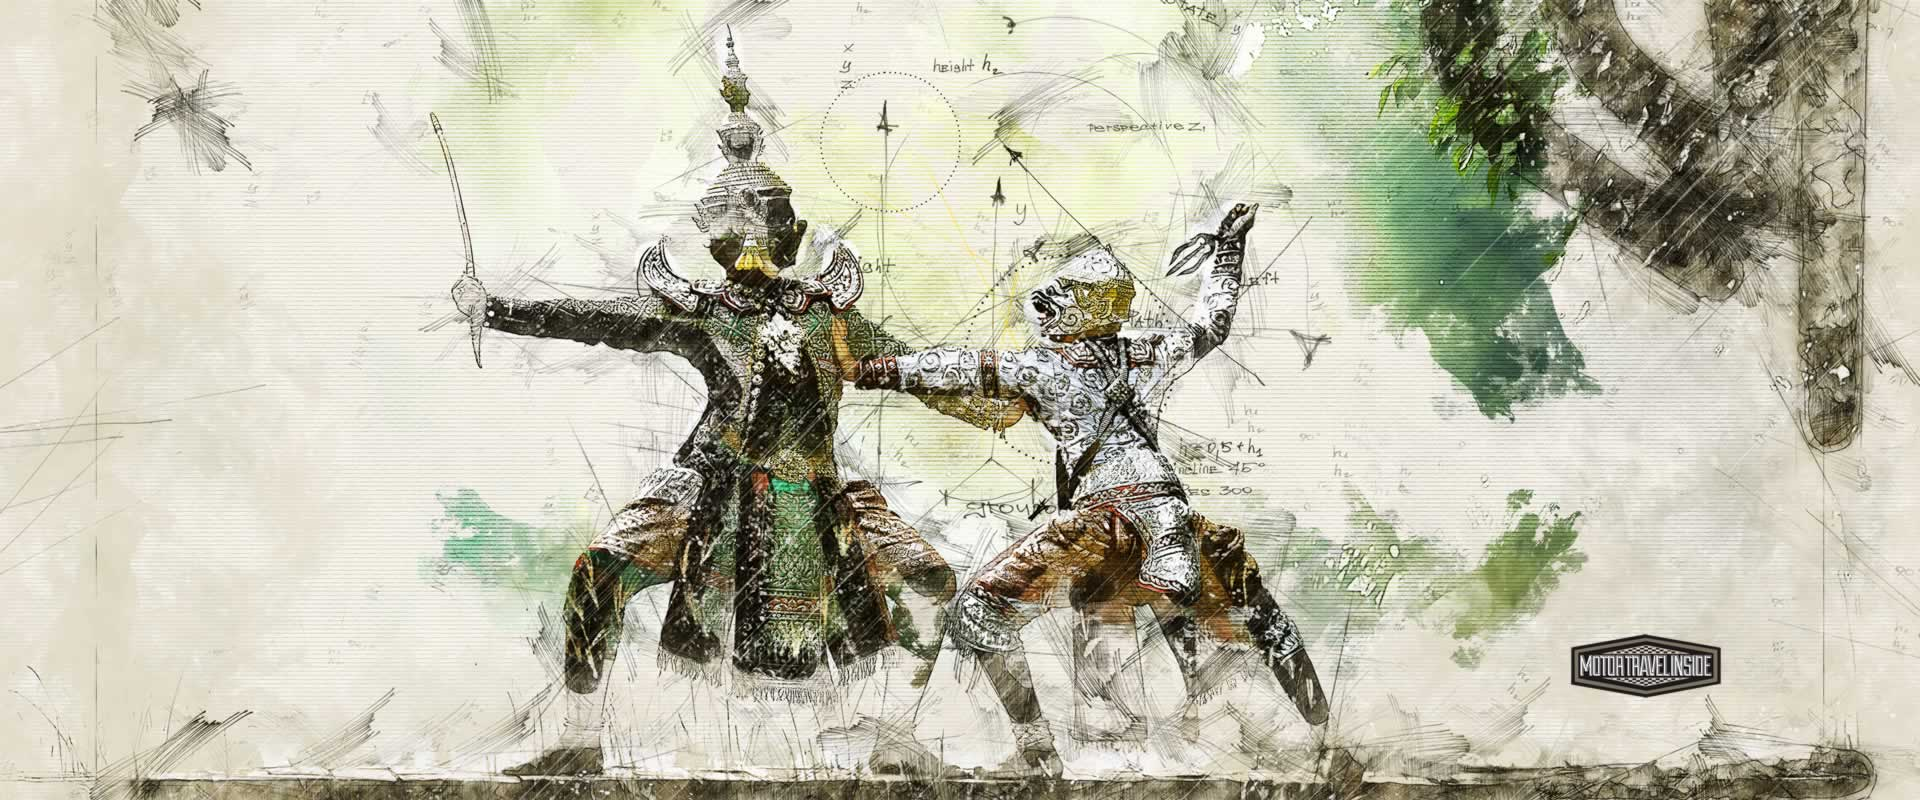 Thai costumes are extravagant as they are stunning, telling ancient stories through movement is poetry in motion